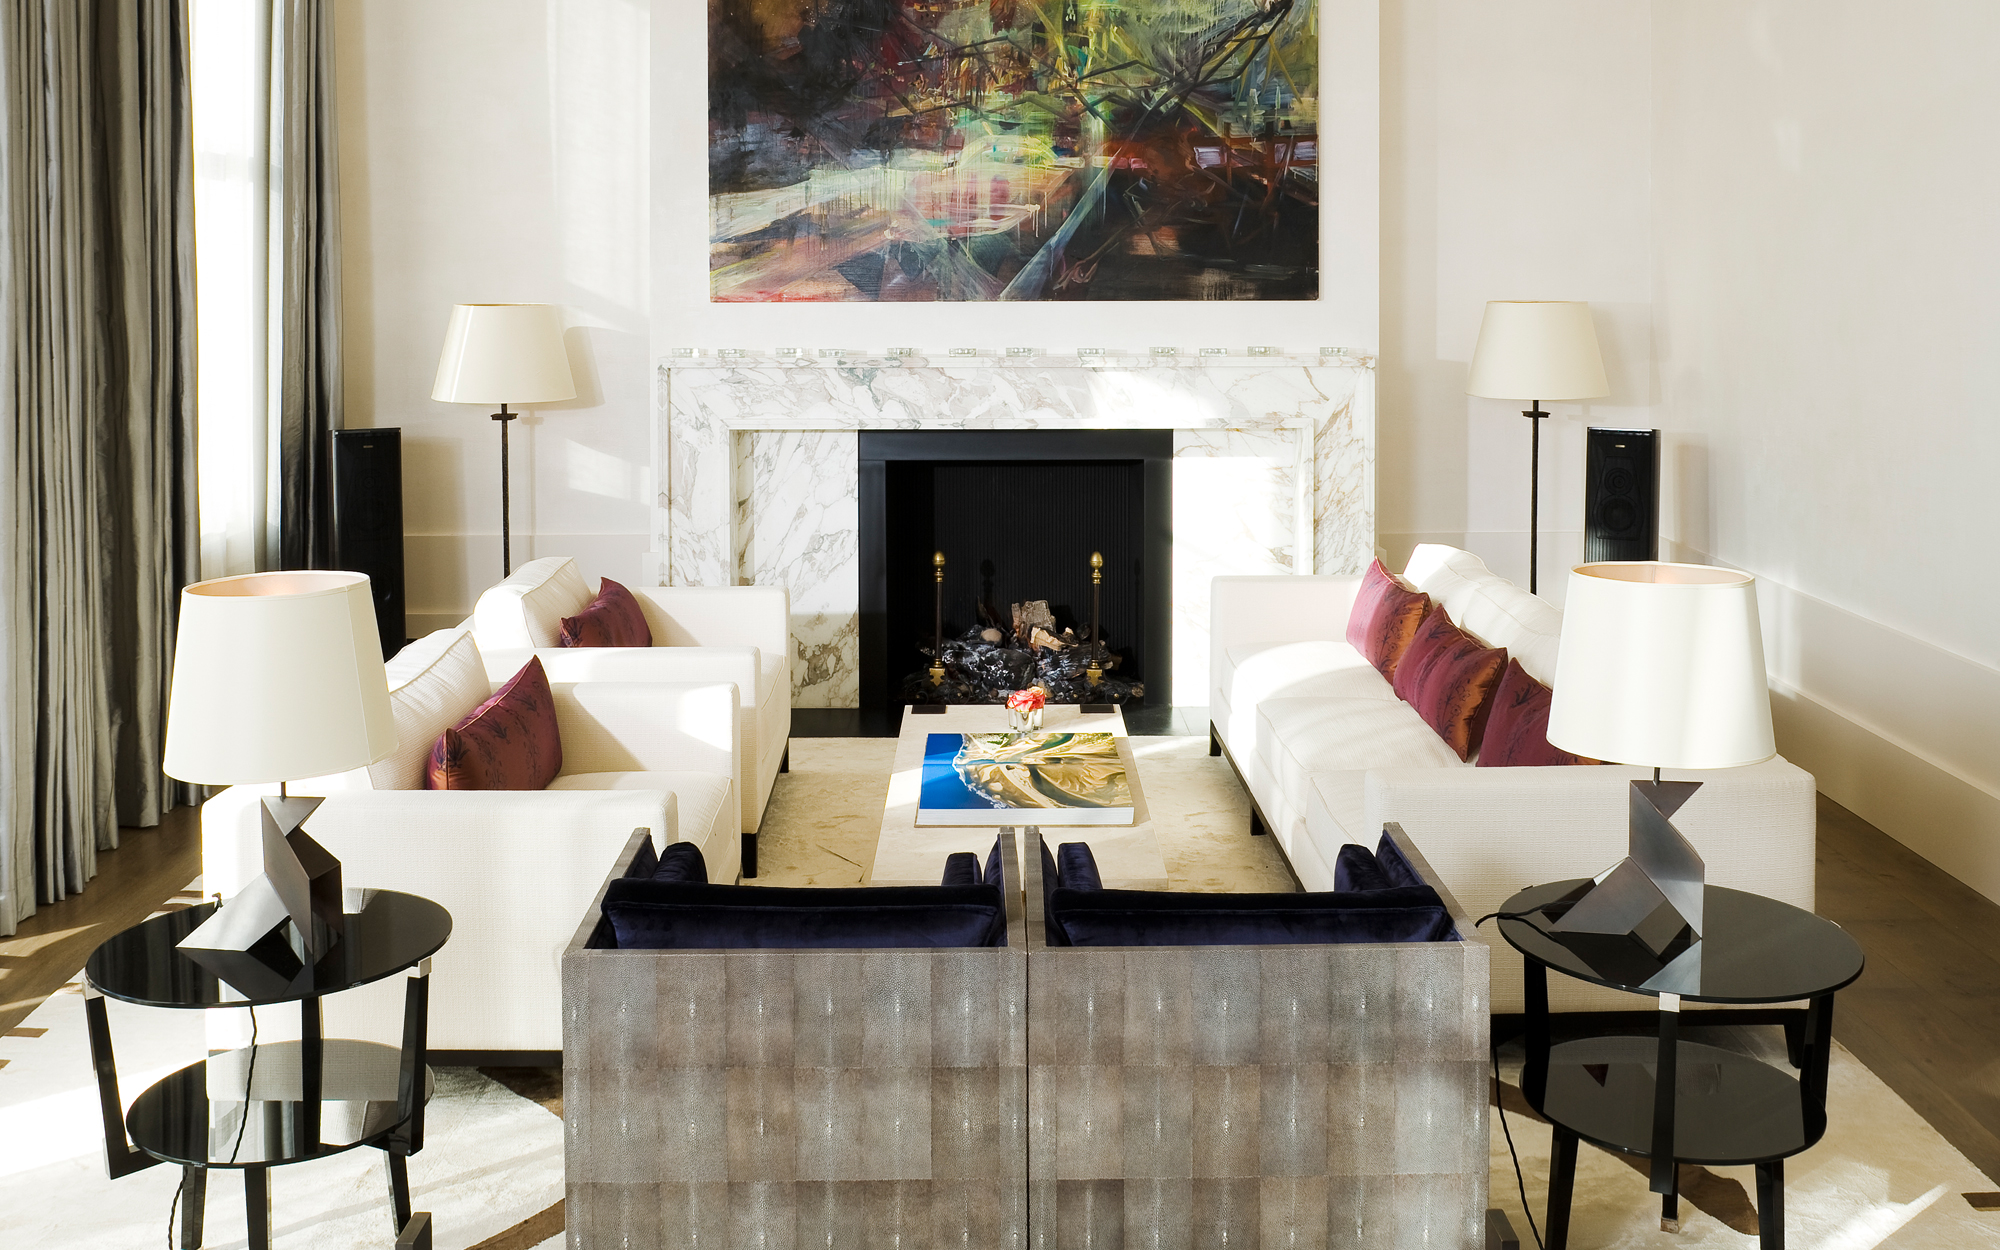 10 great living room projects by david collins 10 great living room projects by David Collins contemporary family home by david collins